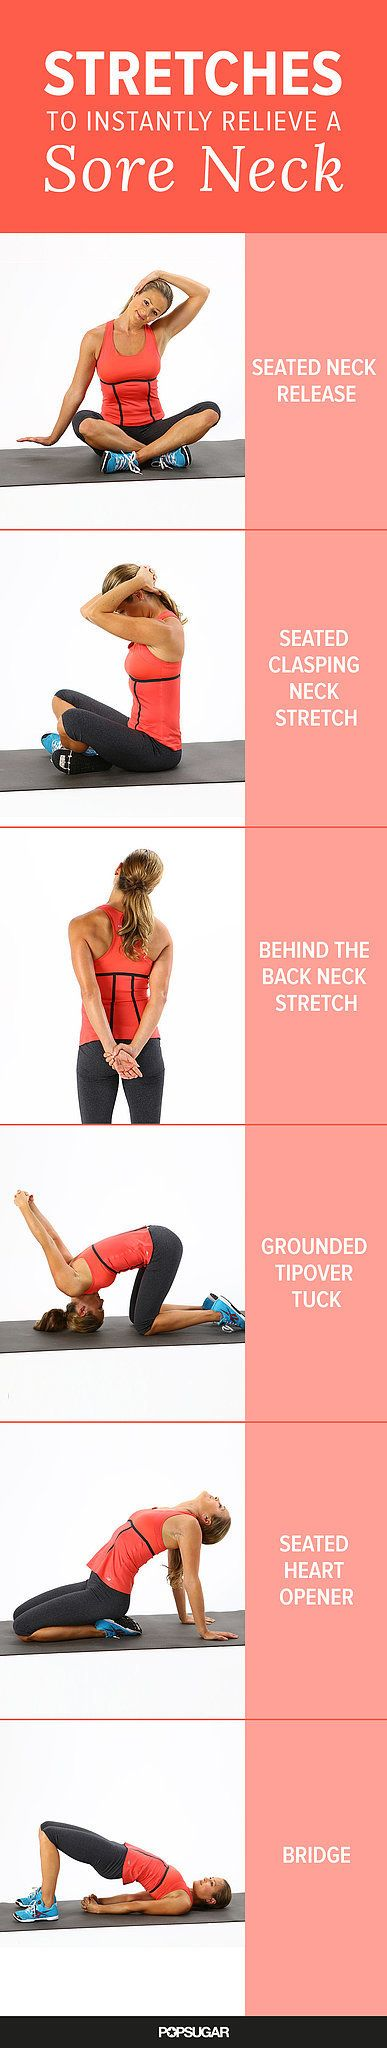 Sore running a These Stretches With Relieve free mens trainer shoes Neck Instantly